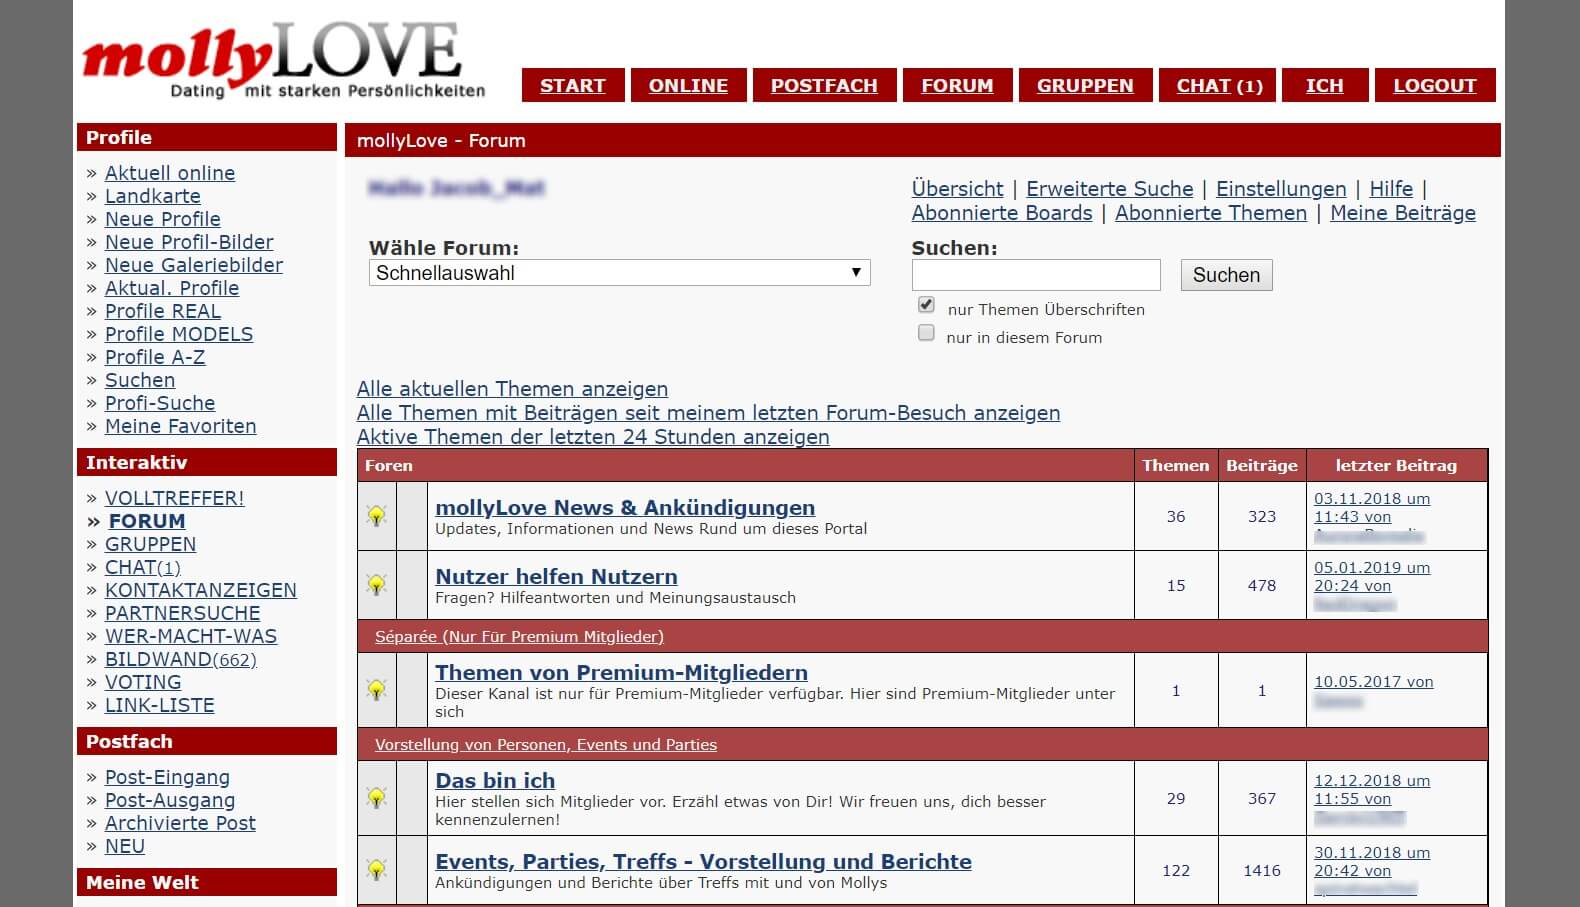 MollyLOVE Forum Page